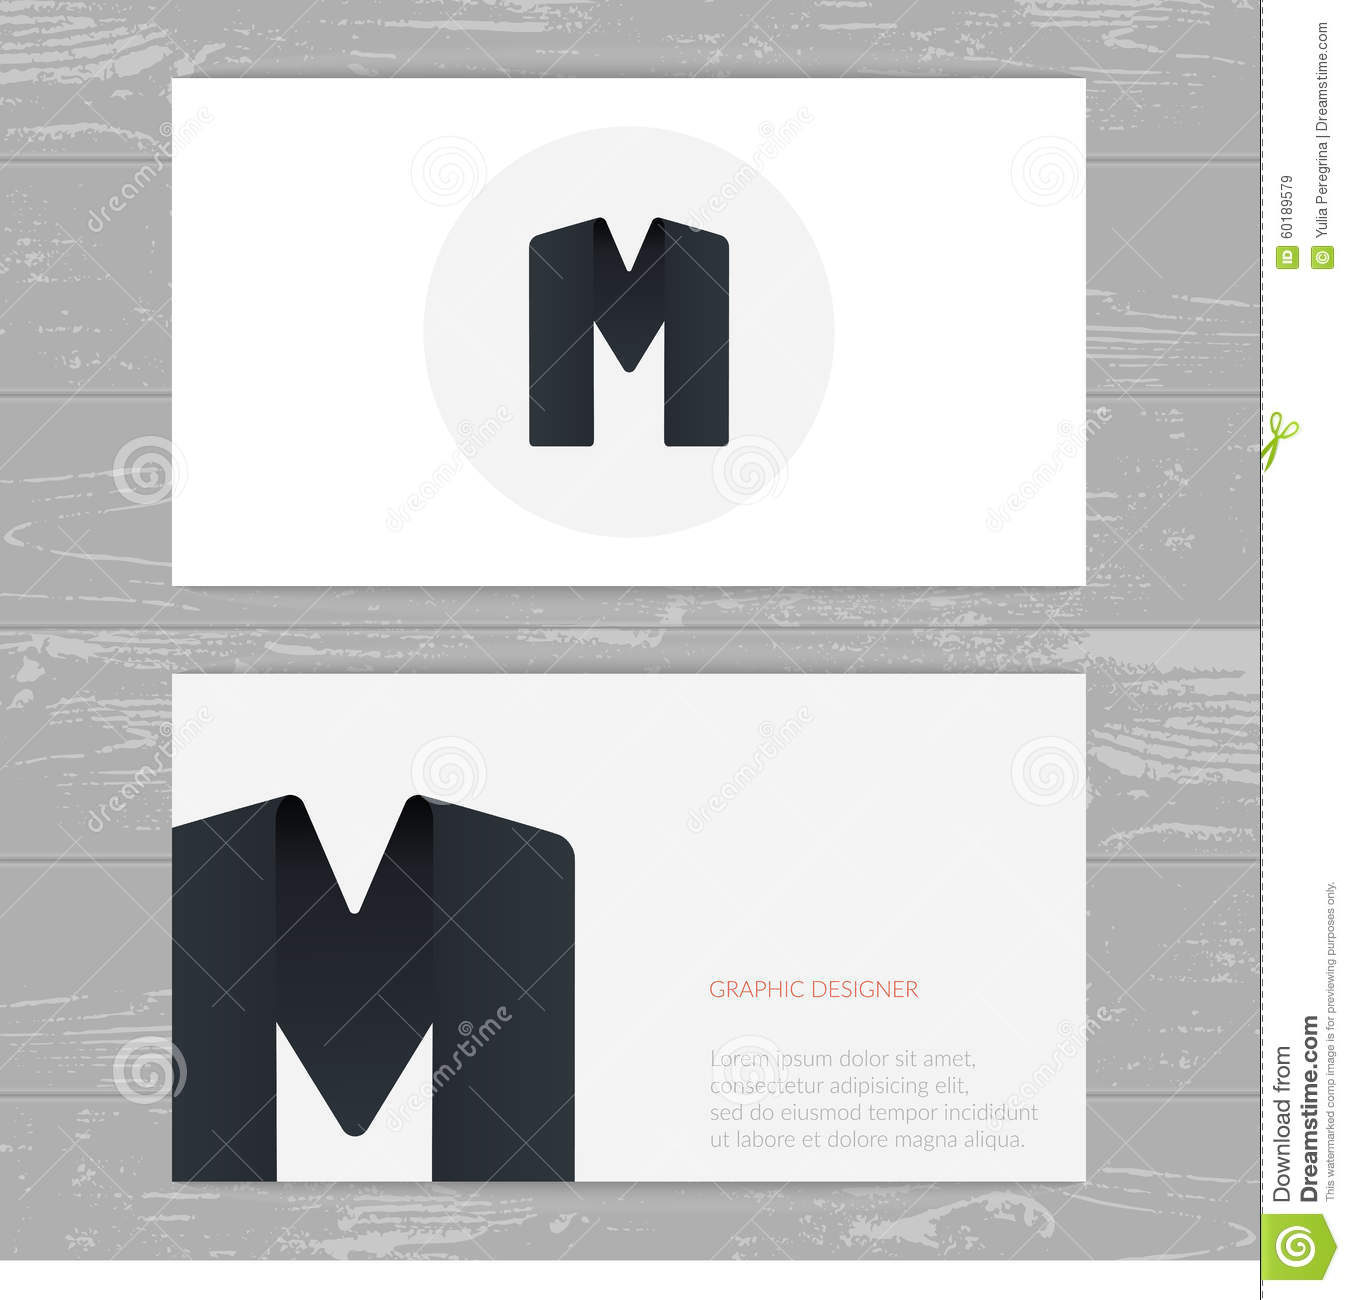 business card template with logo alphabet letter m  stock vector